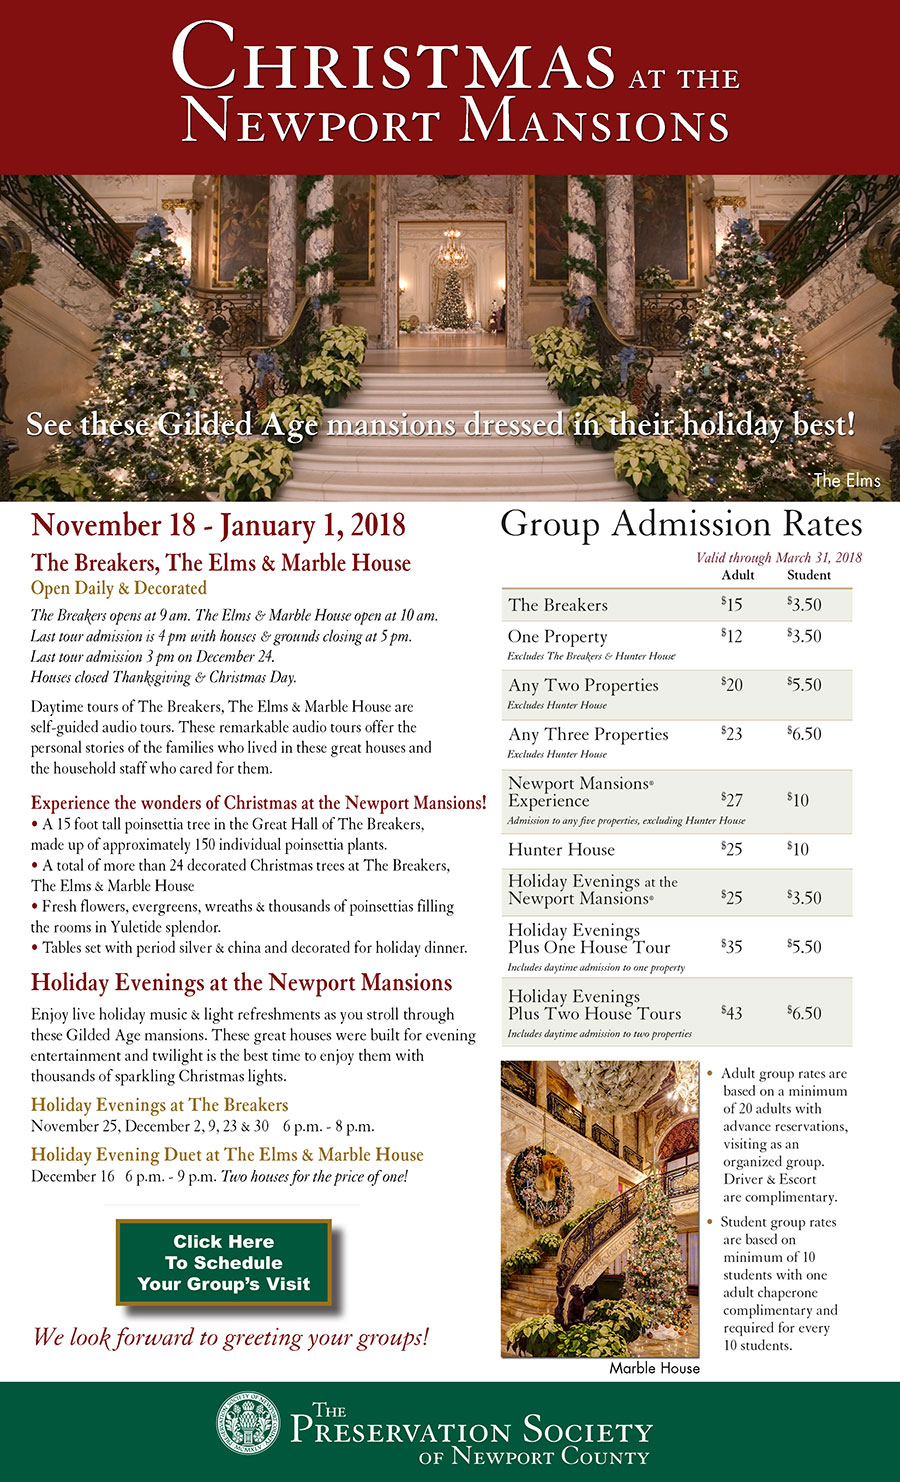 newport mansions/christmas for groups